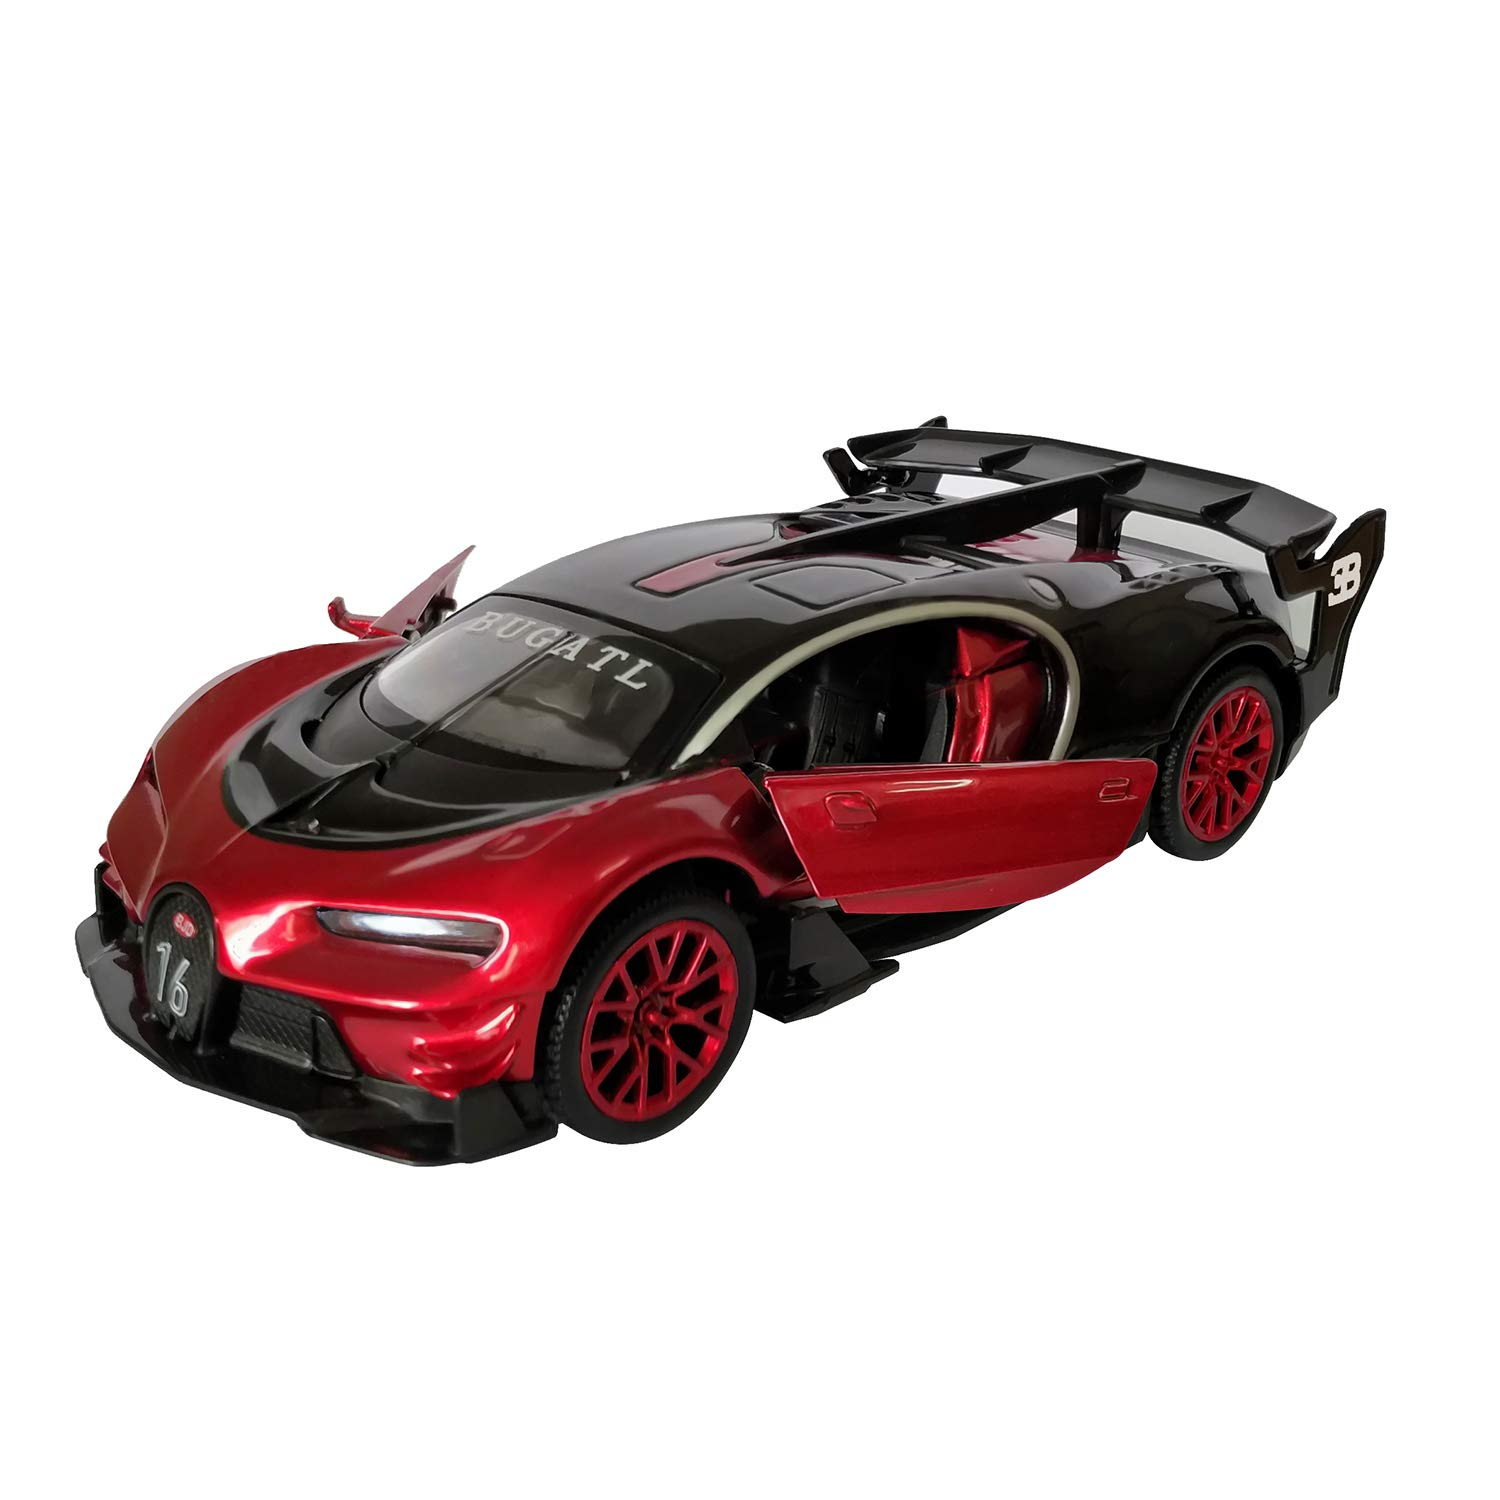 LMOY 1:32 Scale Bugatti Chiron Vision Grand Turismo Diecast Toy Car Review